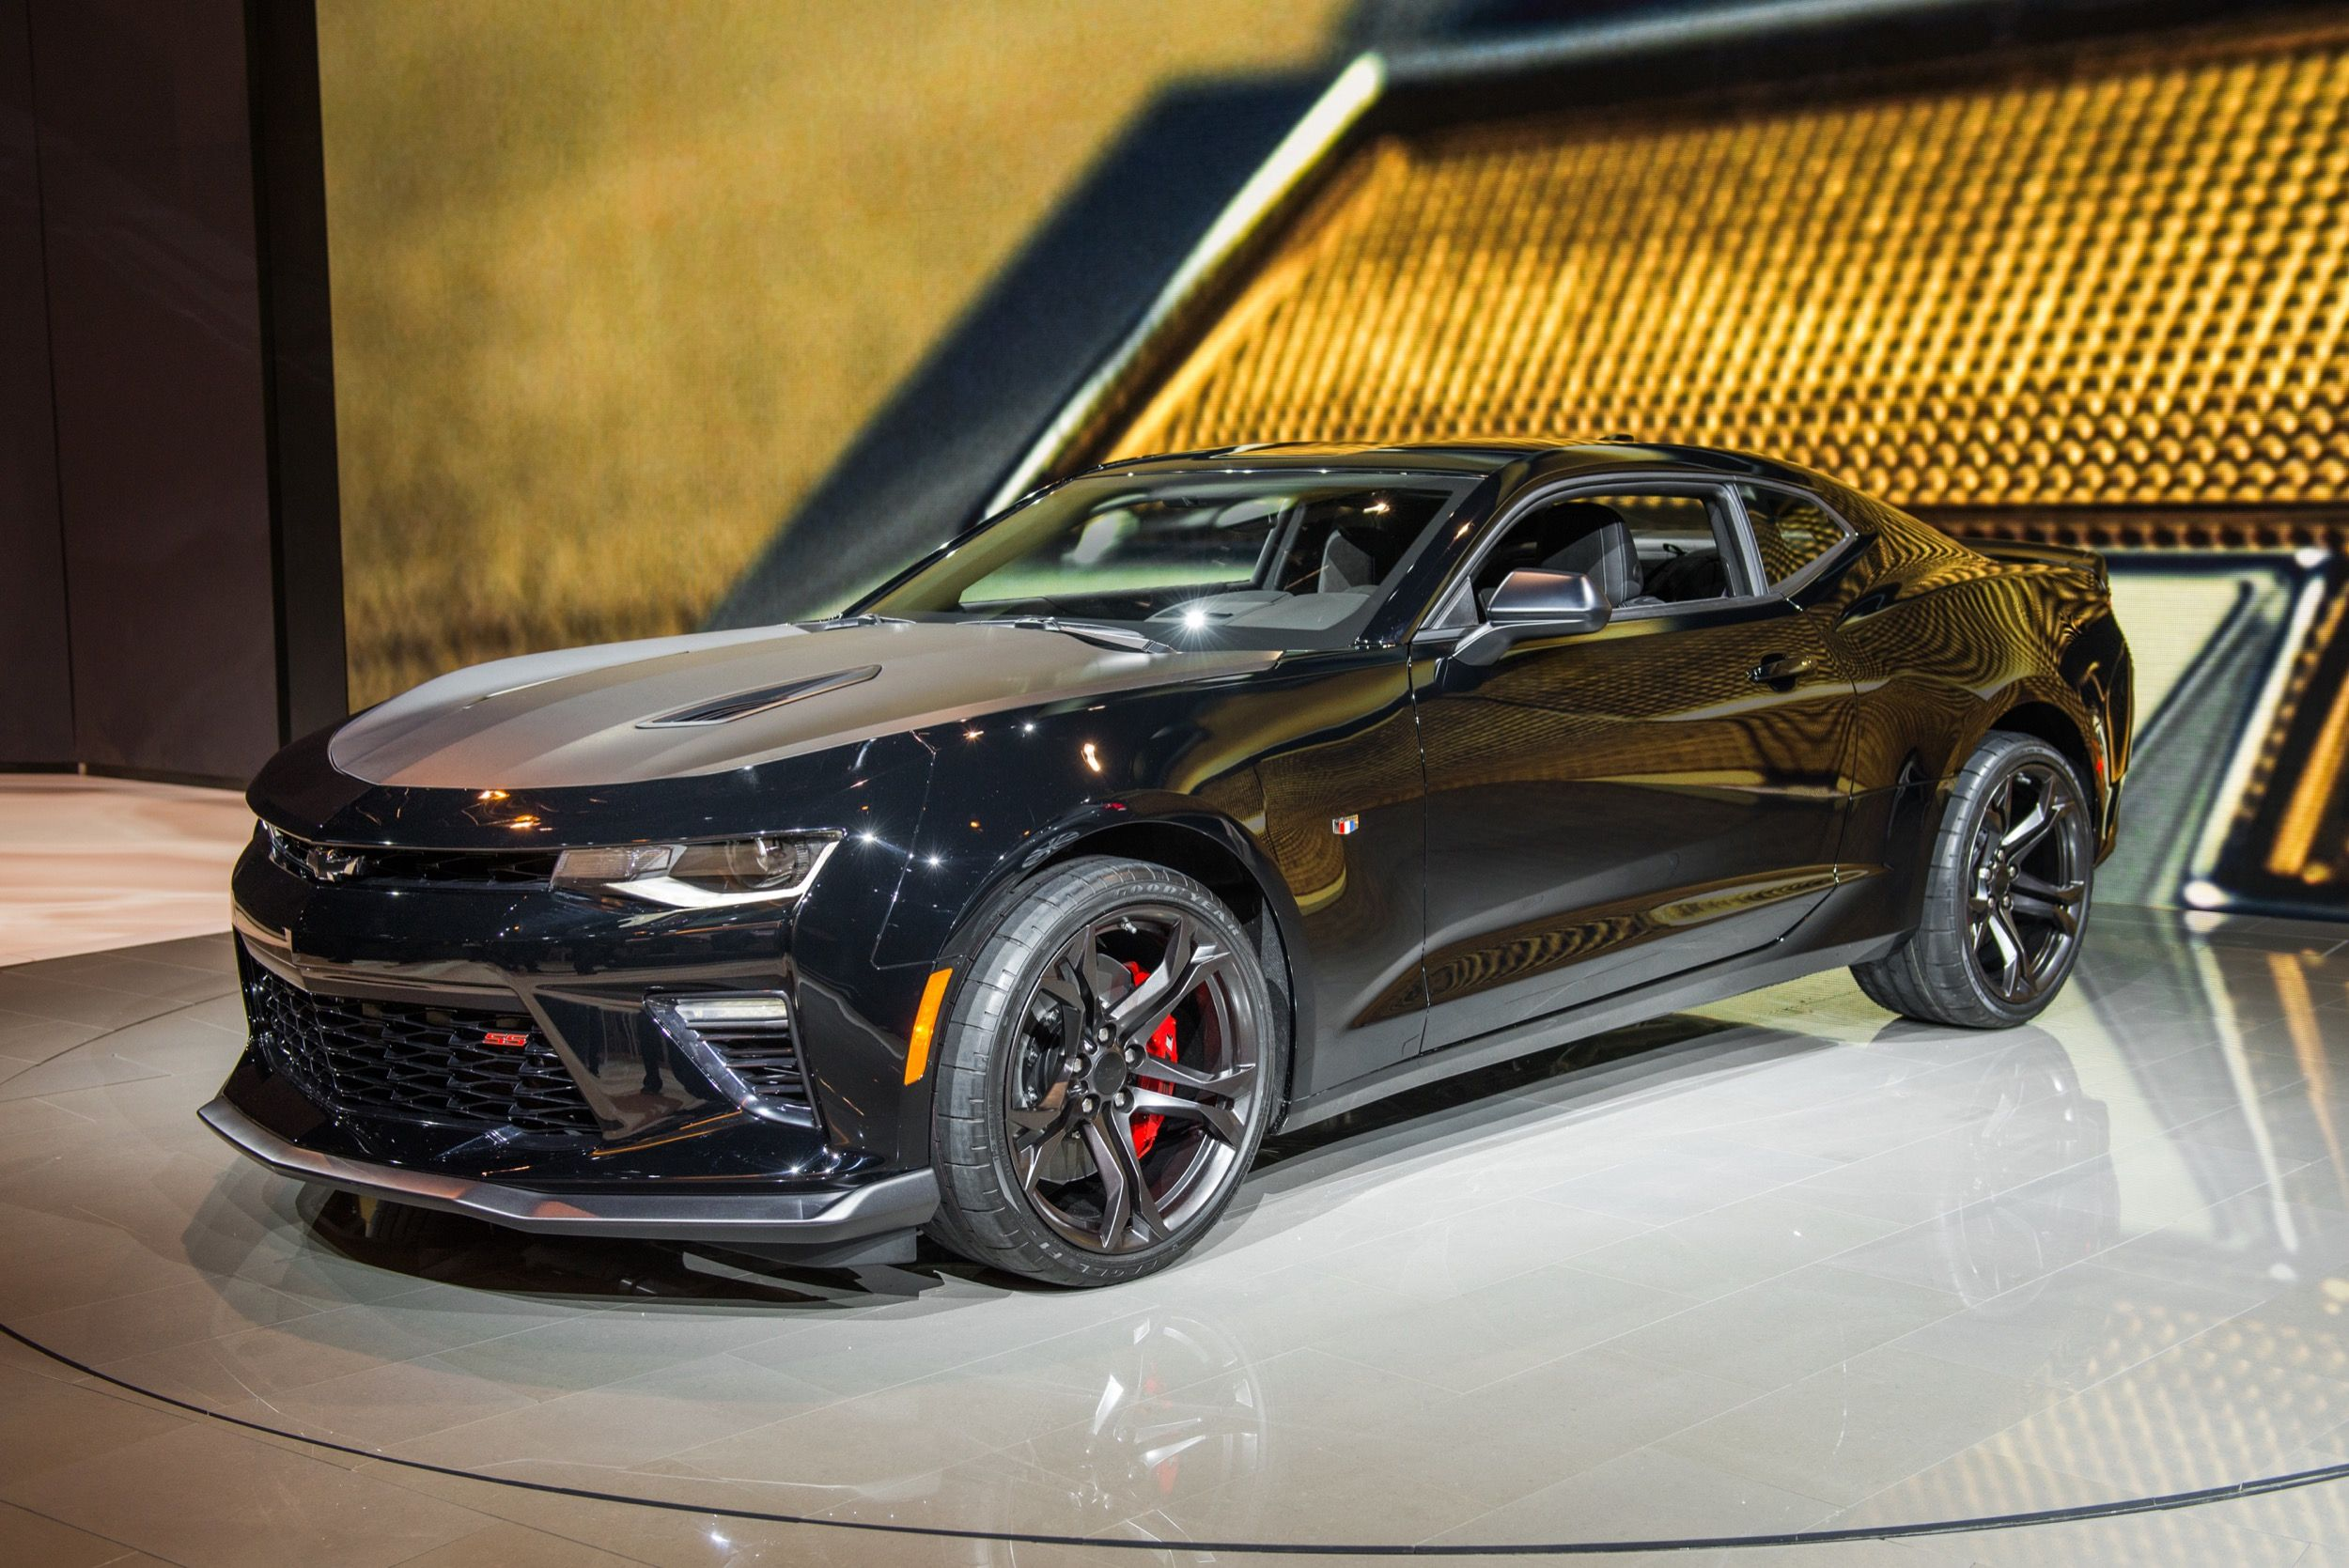 2017 chevy camaro 1le performance specs gm authority hot rods pinterest chevy camaro. Black Bedroom Furniture Sets. Home Design Ideas